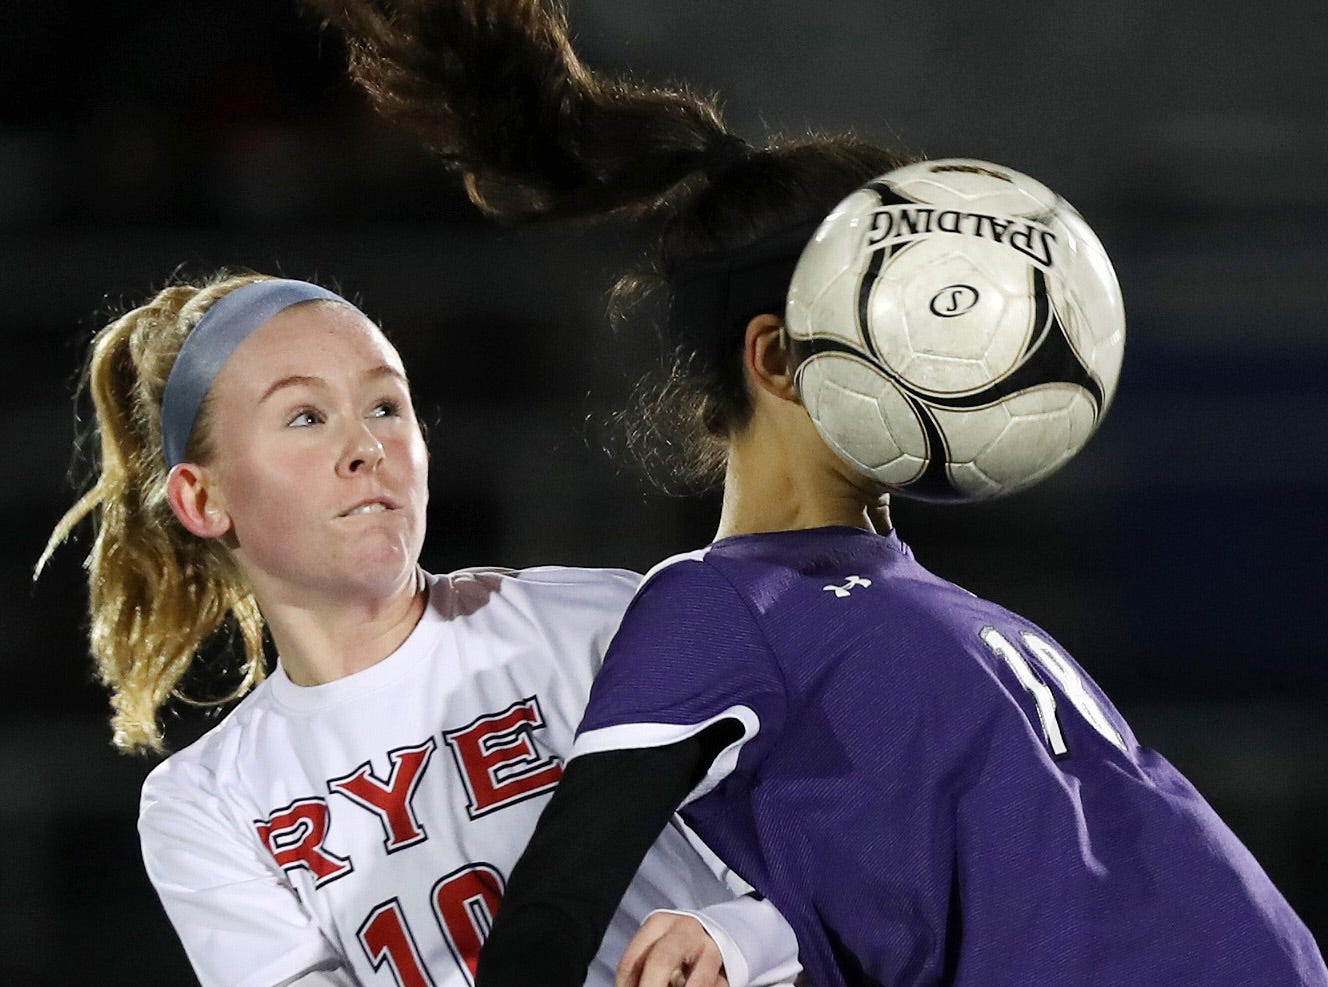 John Jay's Adeline Angelino (18) controls the ball against Rye during girls soccer playoffs at John Jay High School in Cross River Oct. 25, 2018. John Jay won the game 2-1 in overtime.